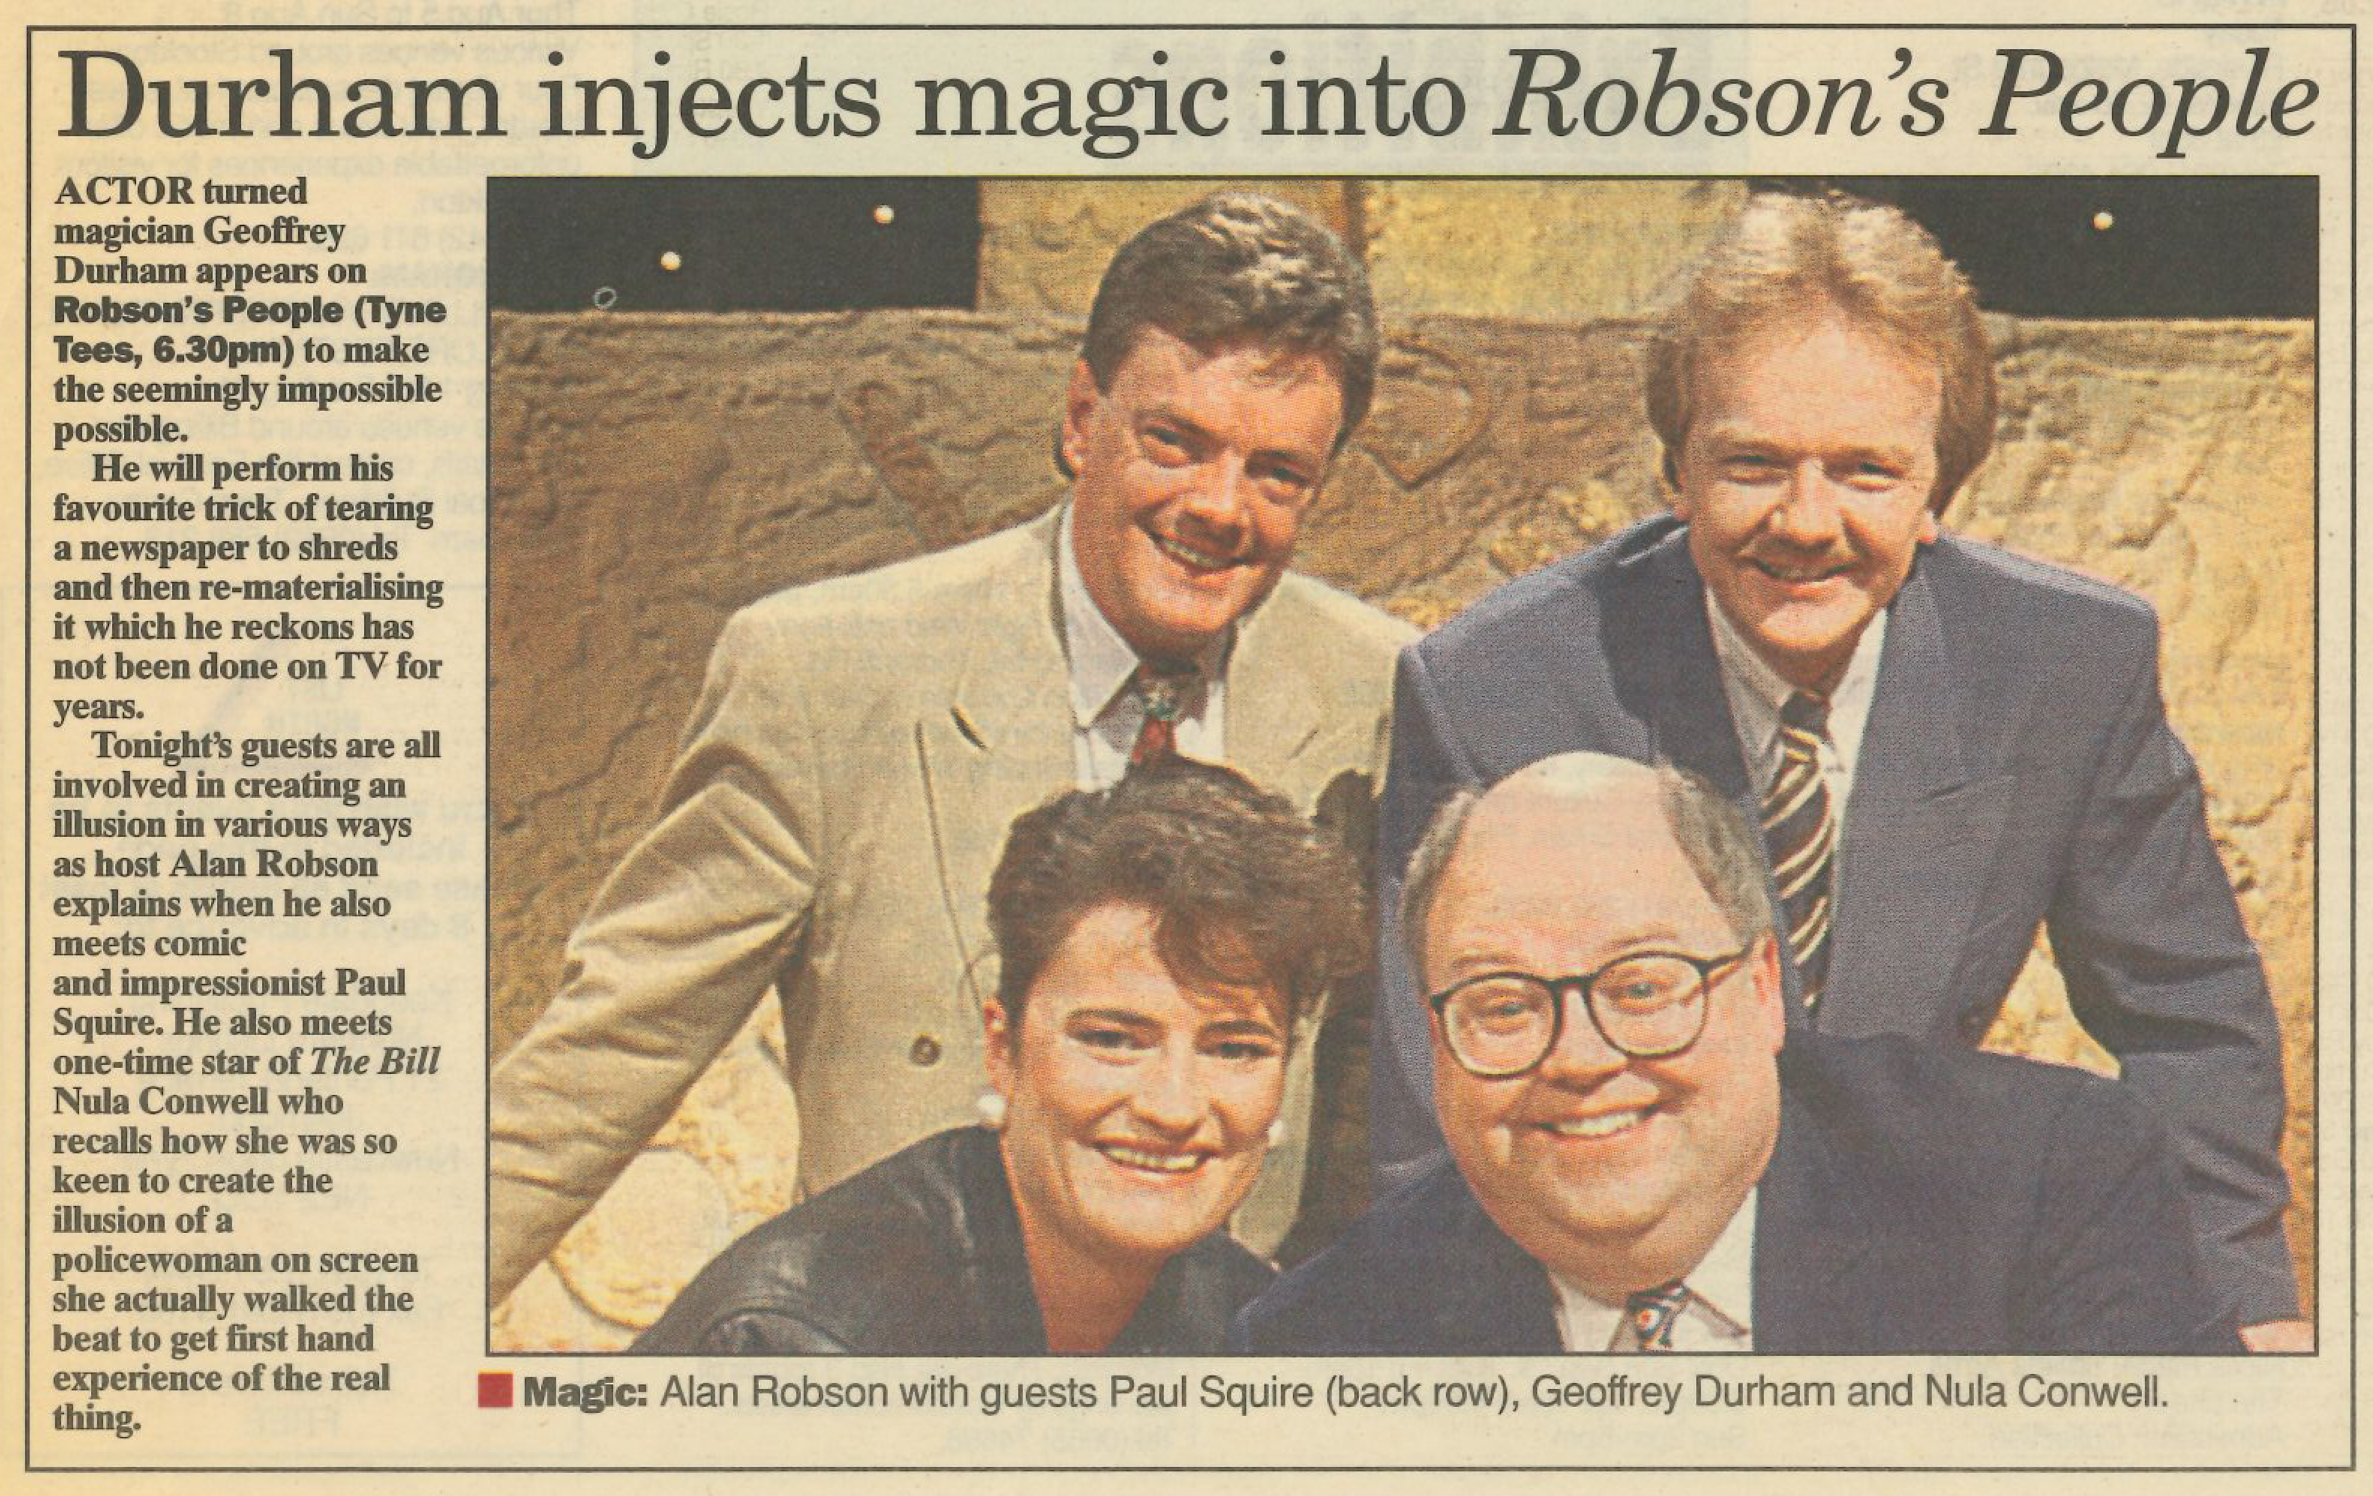 *Article* Robson's People Is Magic